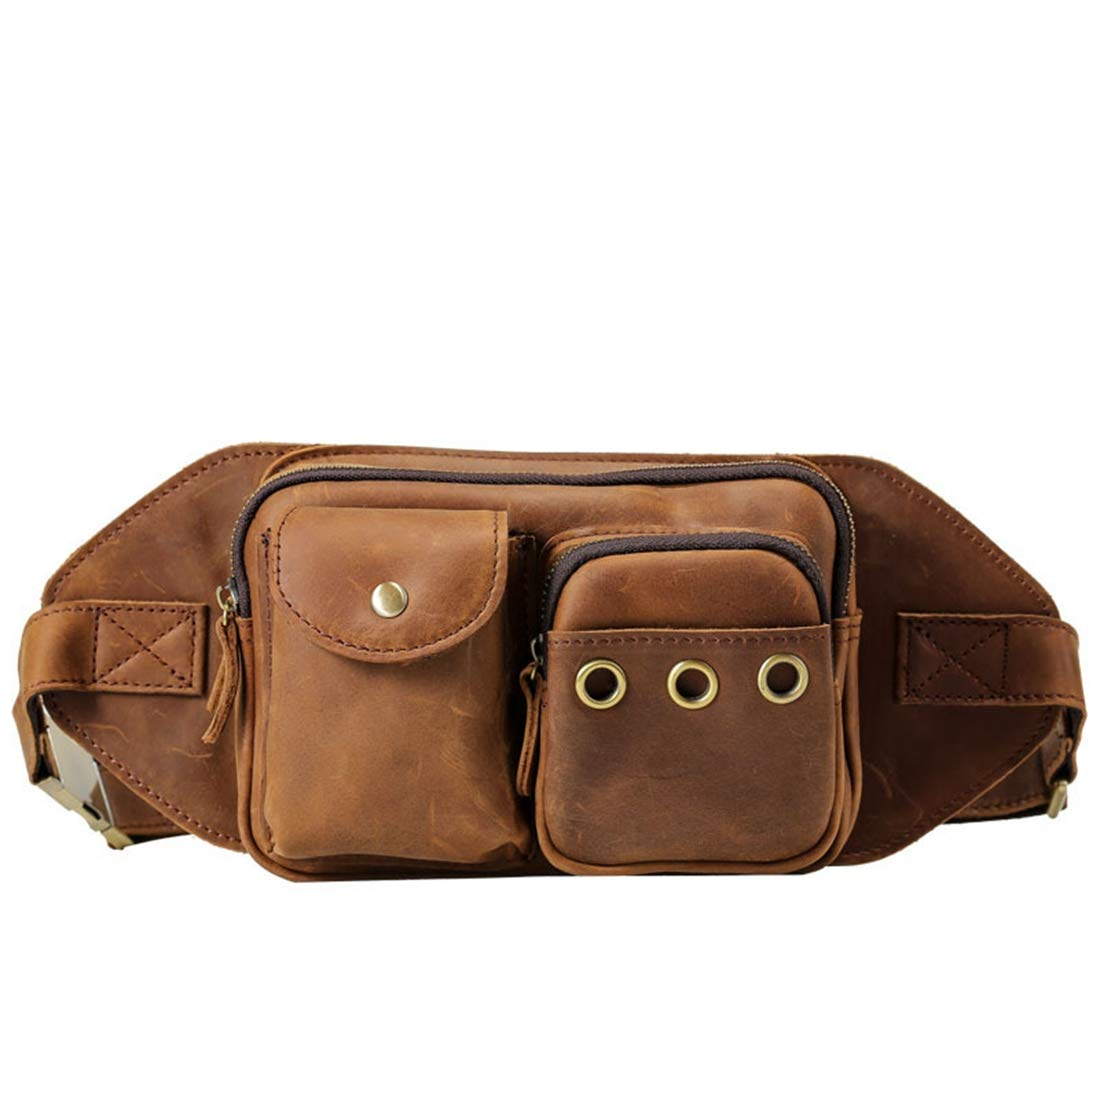 RABILTY Bulk Capacity Crazy Horse Leather Waist Bag Crossbody Fanny Pack Organizer Genuine Leather Travel Neck Pouch Color : Brown